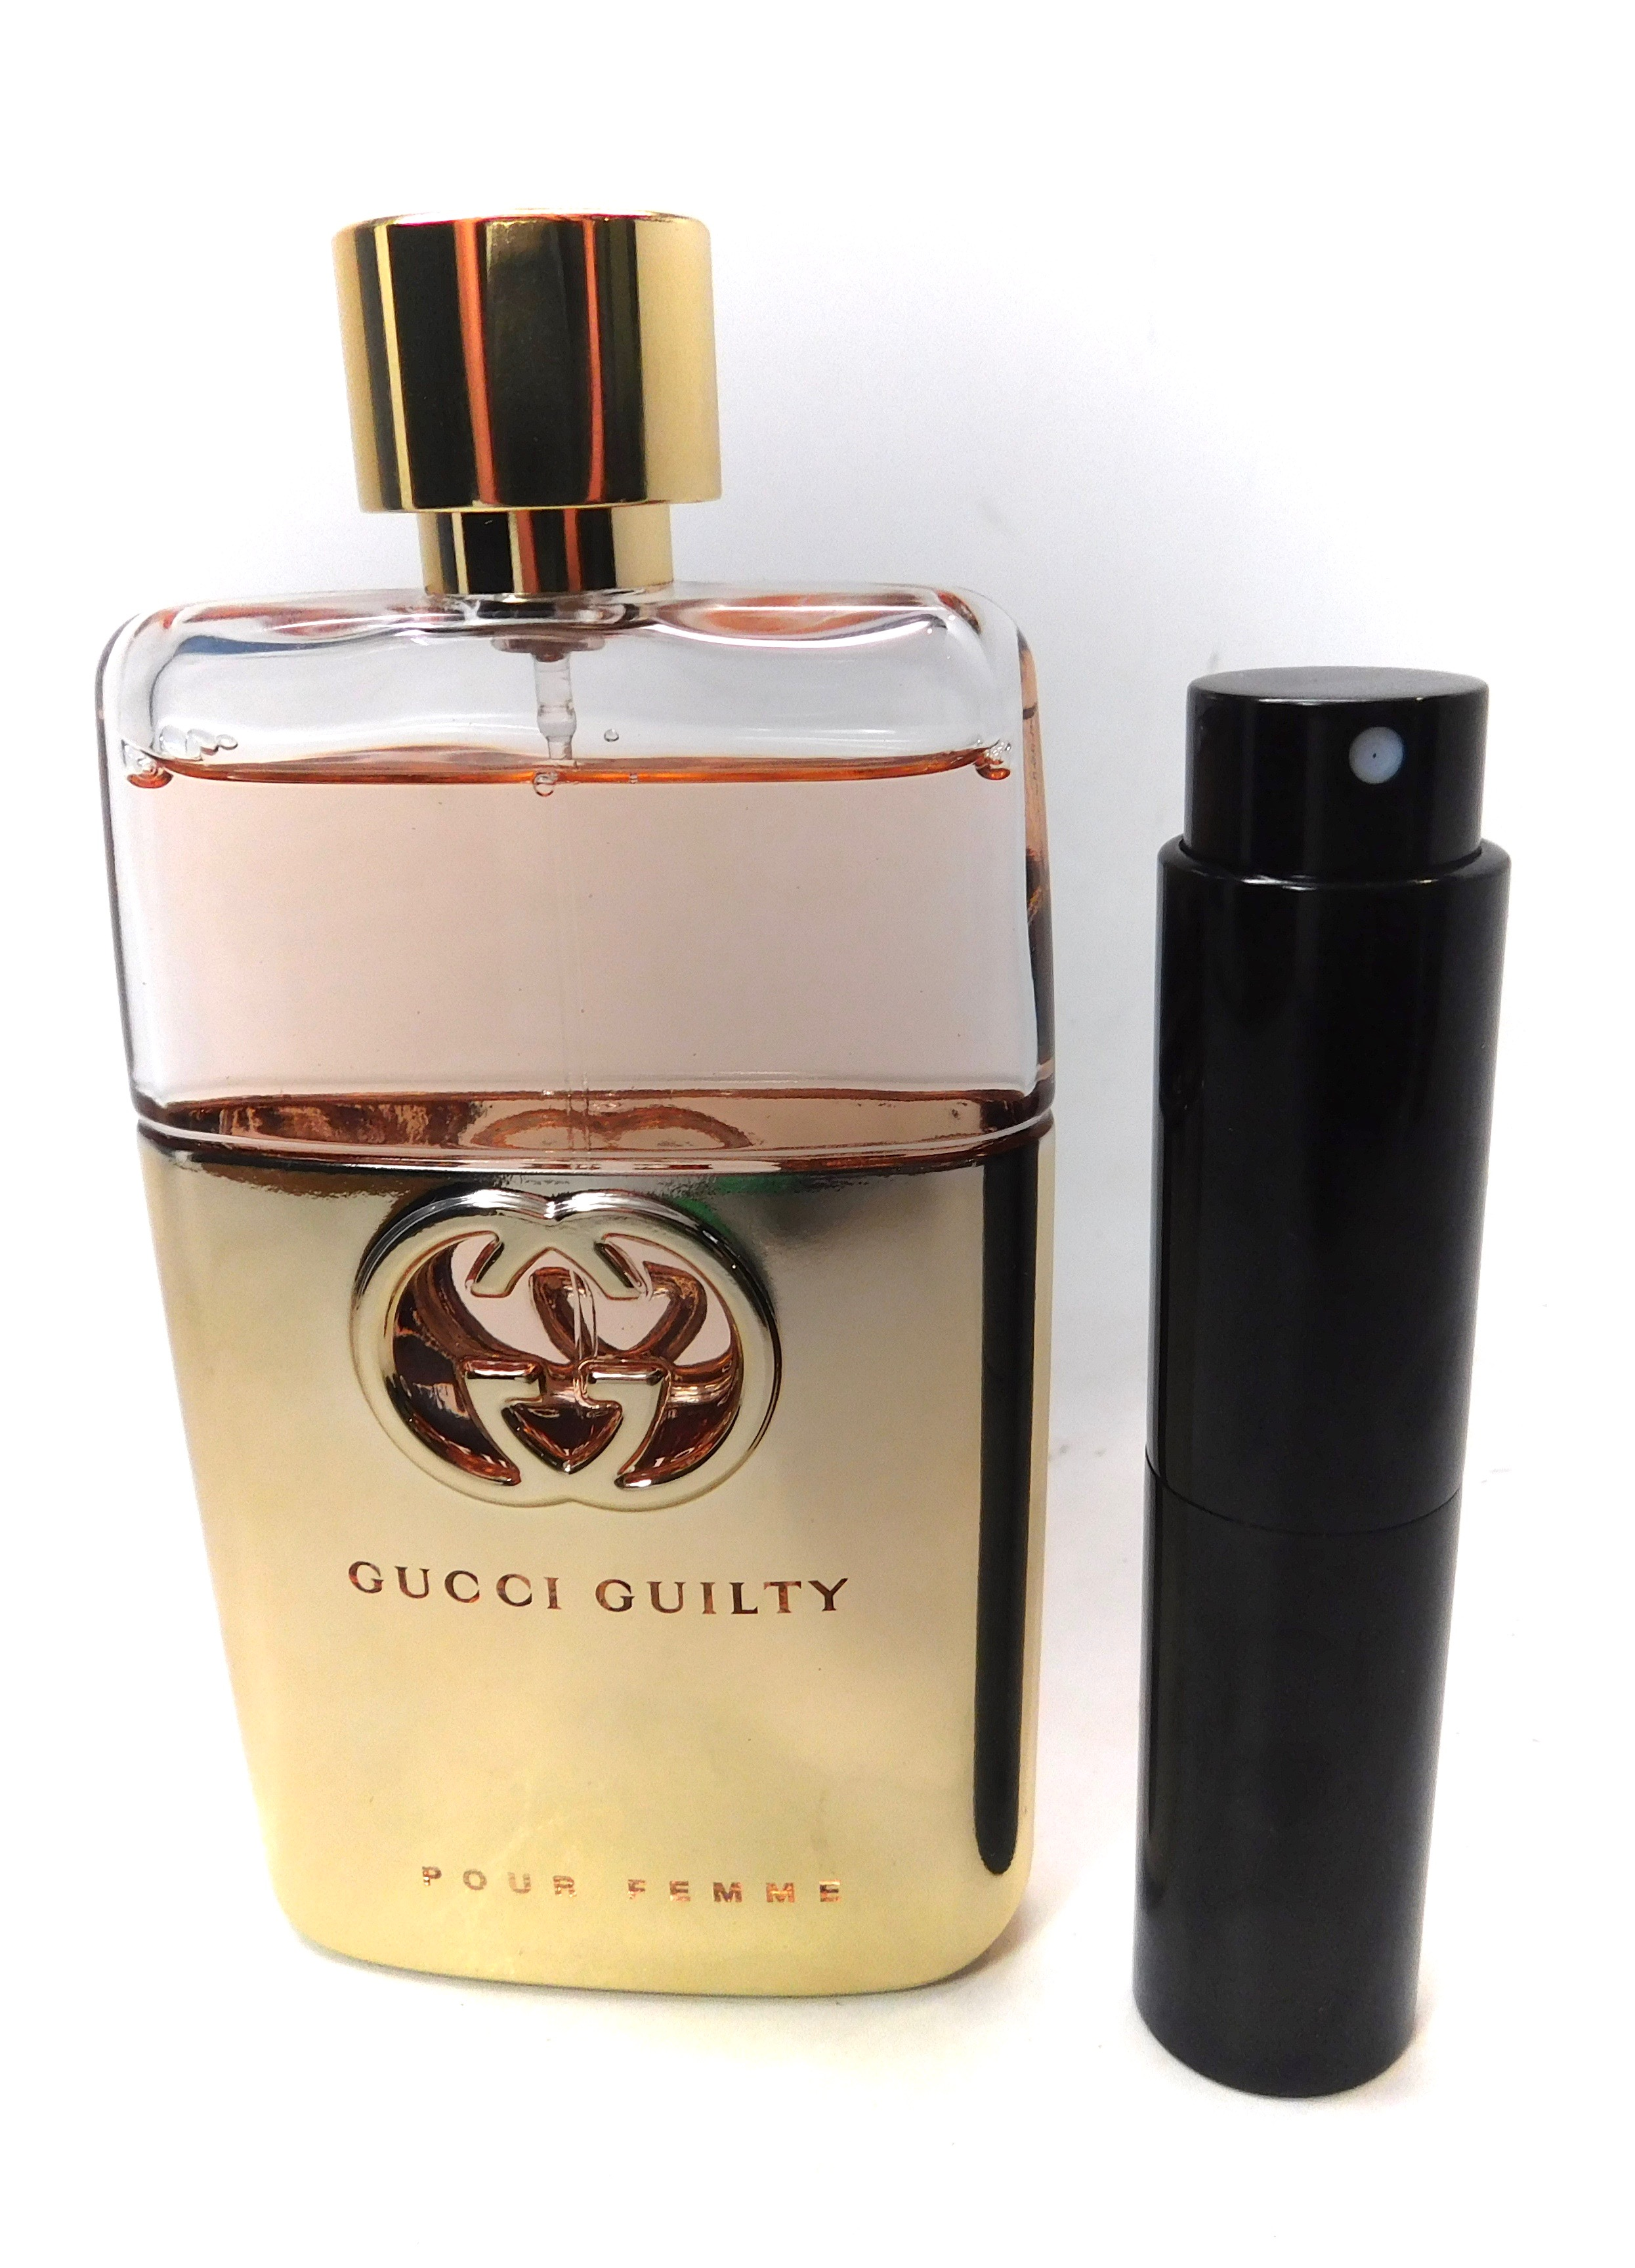 c92160516 Gucci Guilty Pour Femme Eau de Parfum 8ml Travel Atomizer Spin Spray Perfume  New - Best Brands Perfume